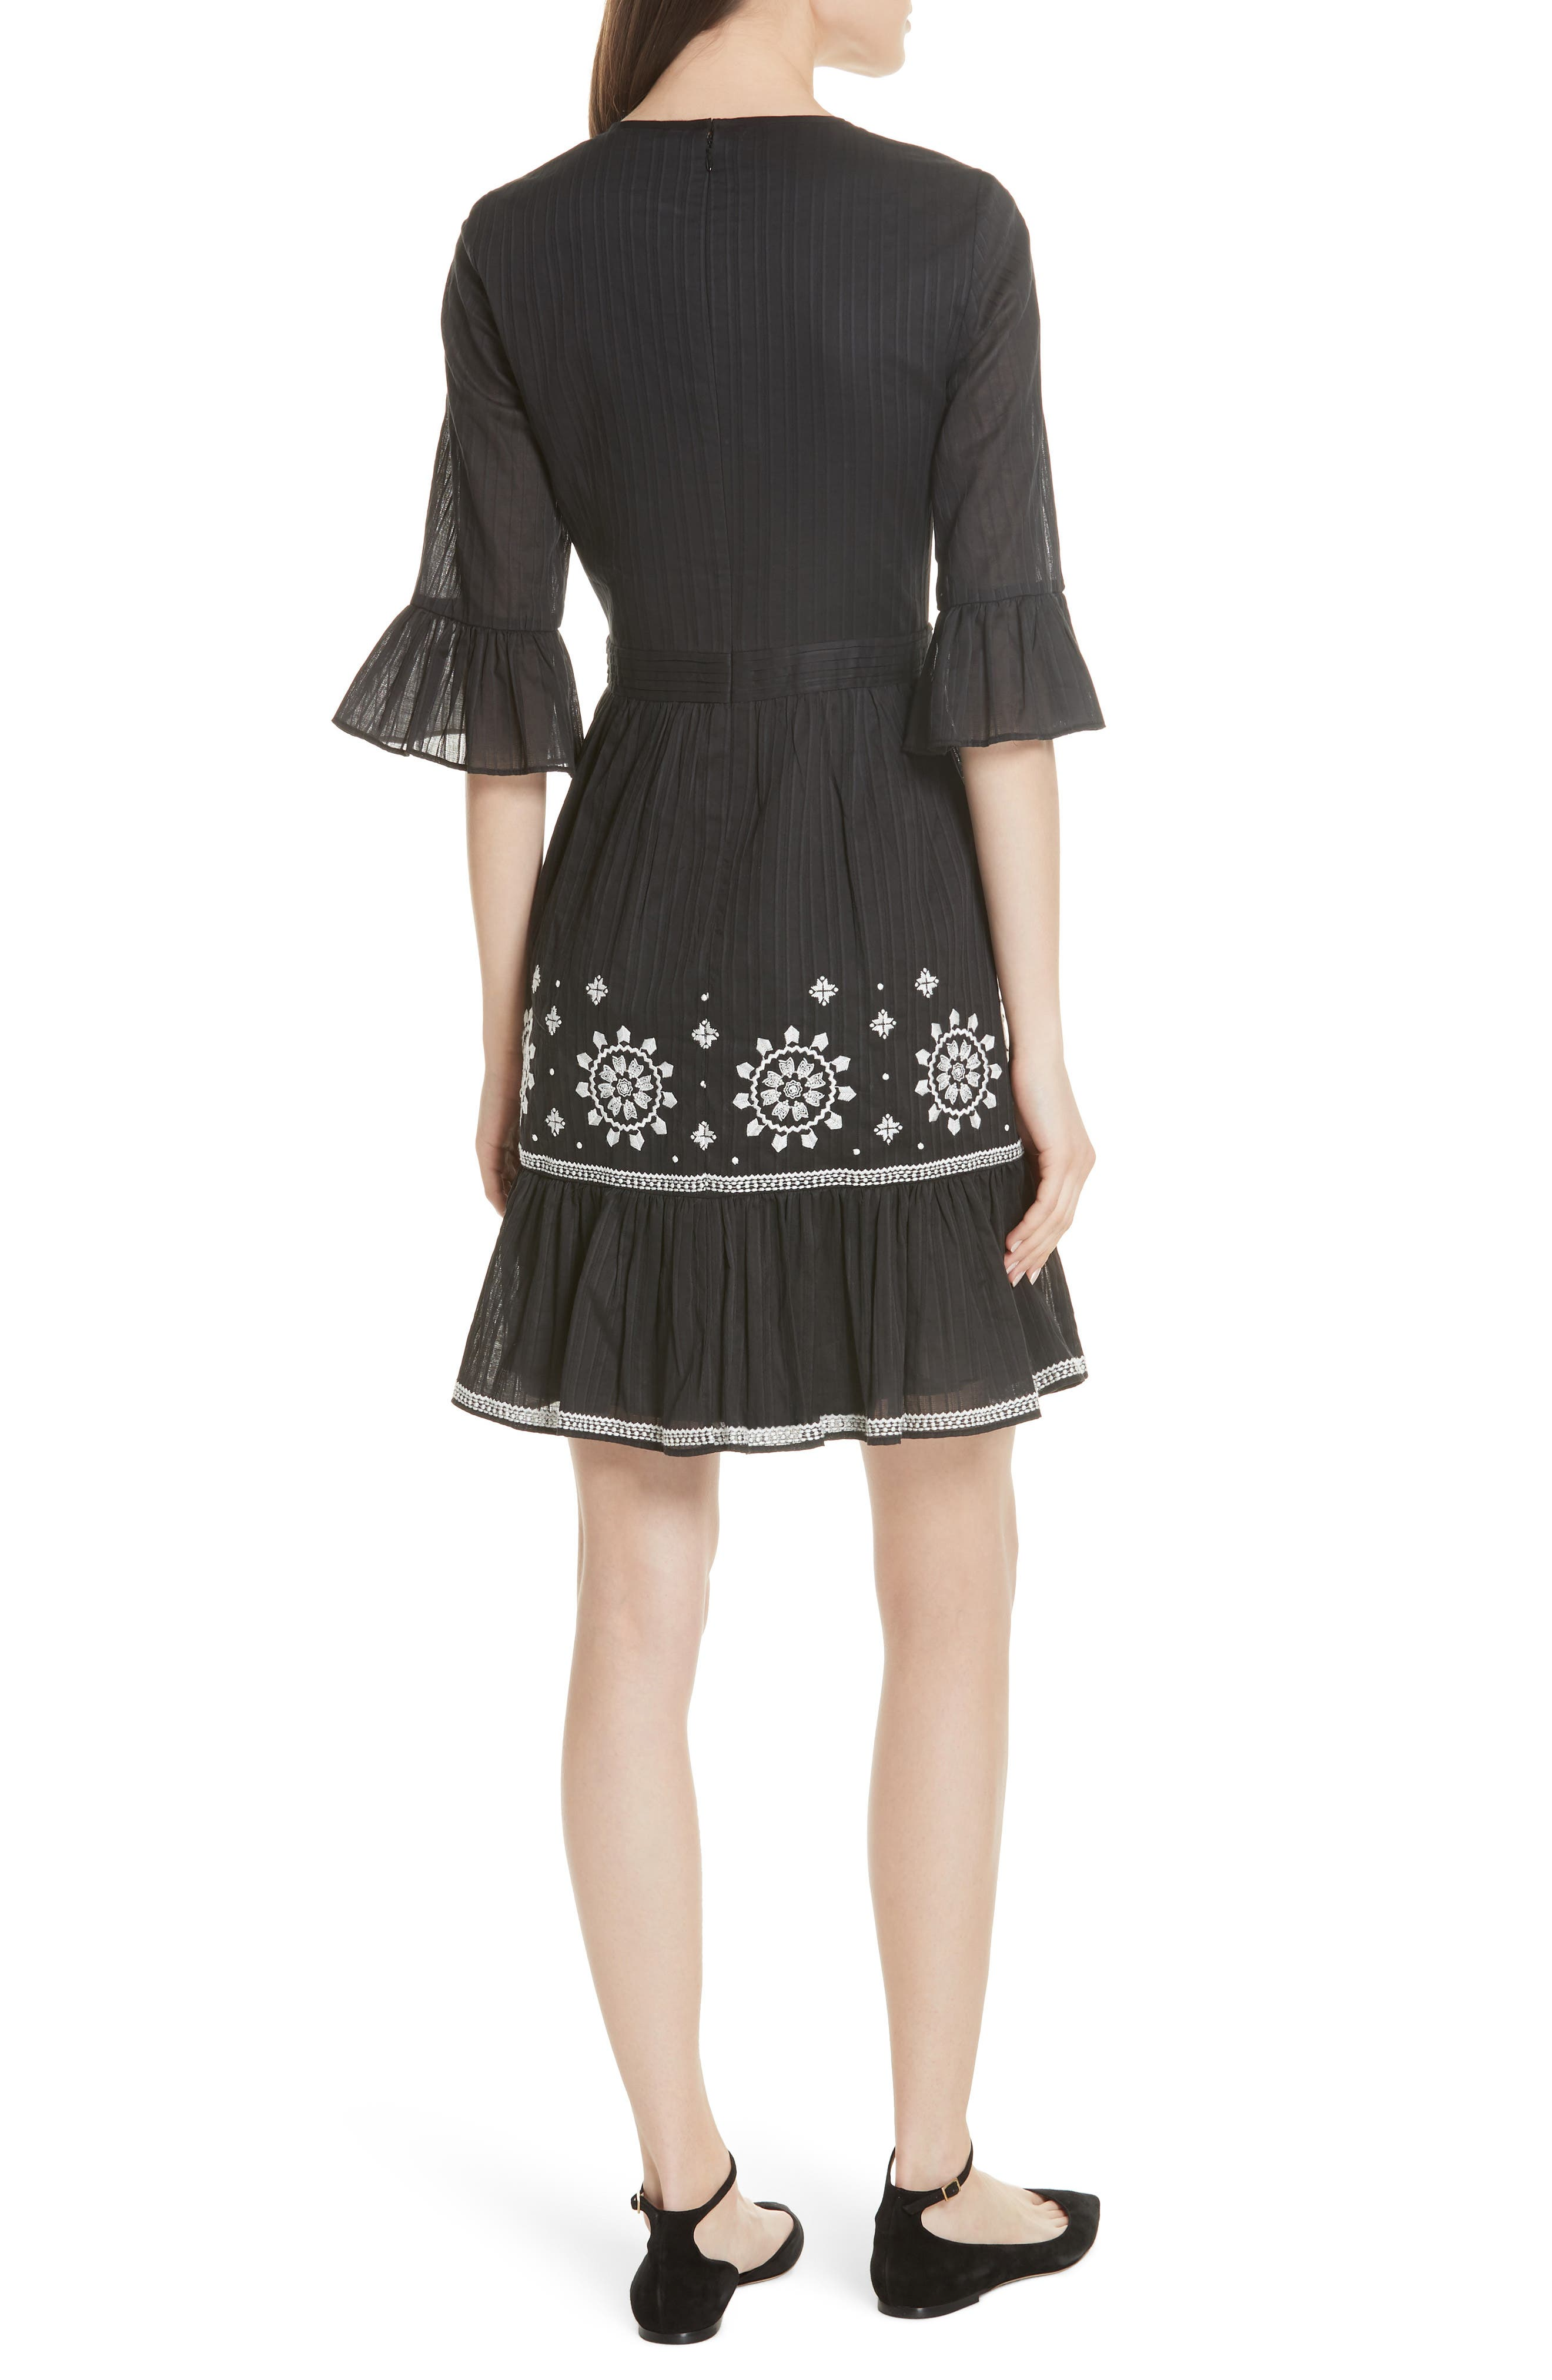 mosaic embroidered dress,                             Alternate thumbnail 2, color,                             Black